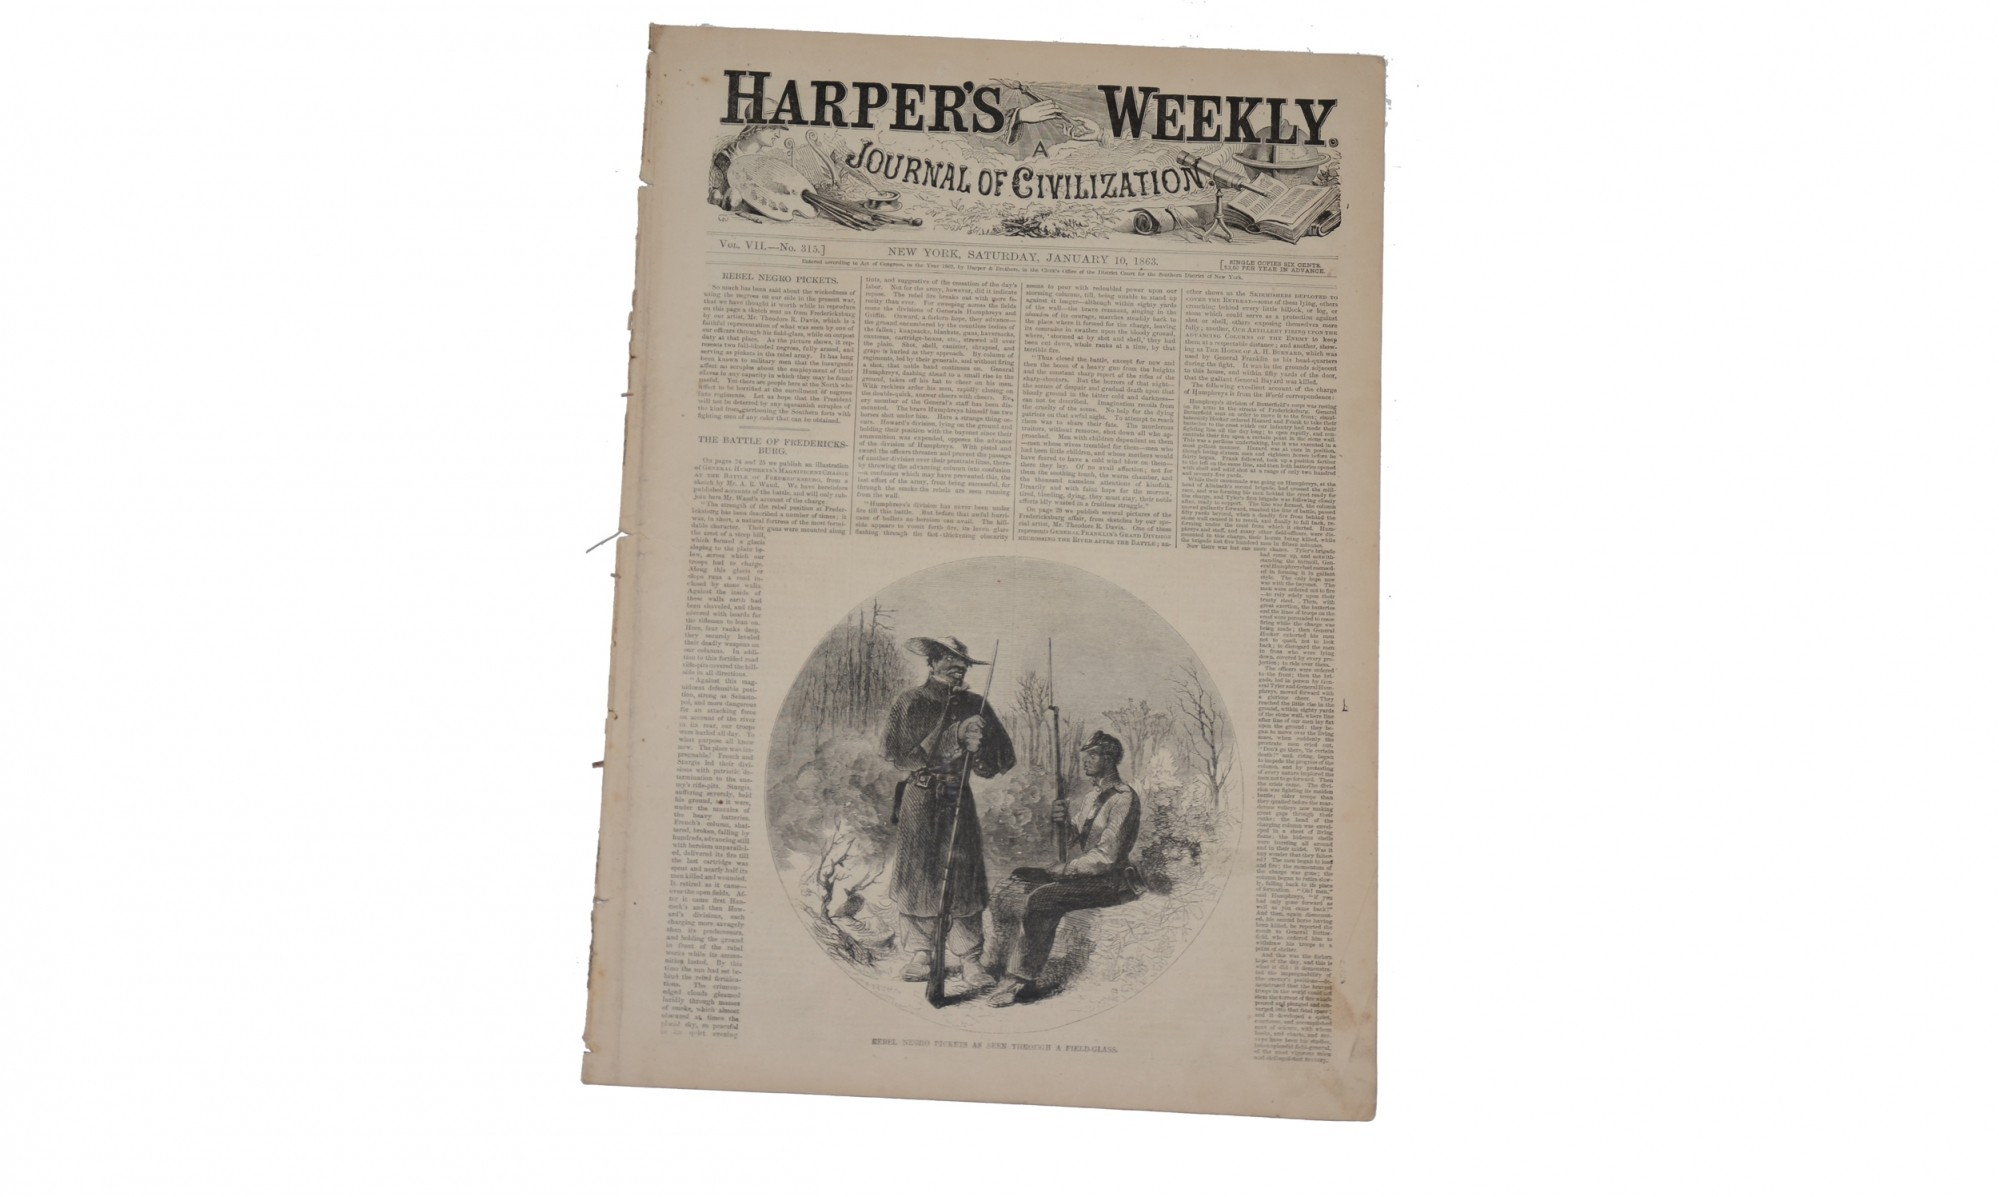 HARPER'S WEEKLY DATED JANUARY 10, 1863